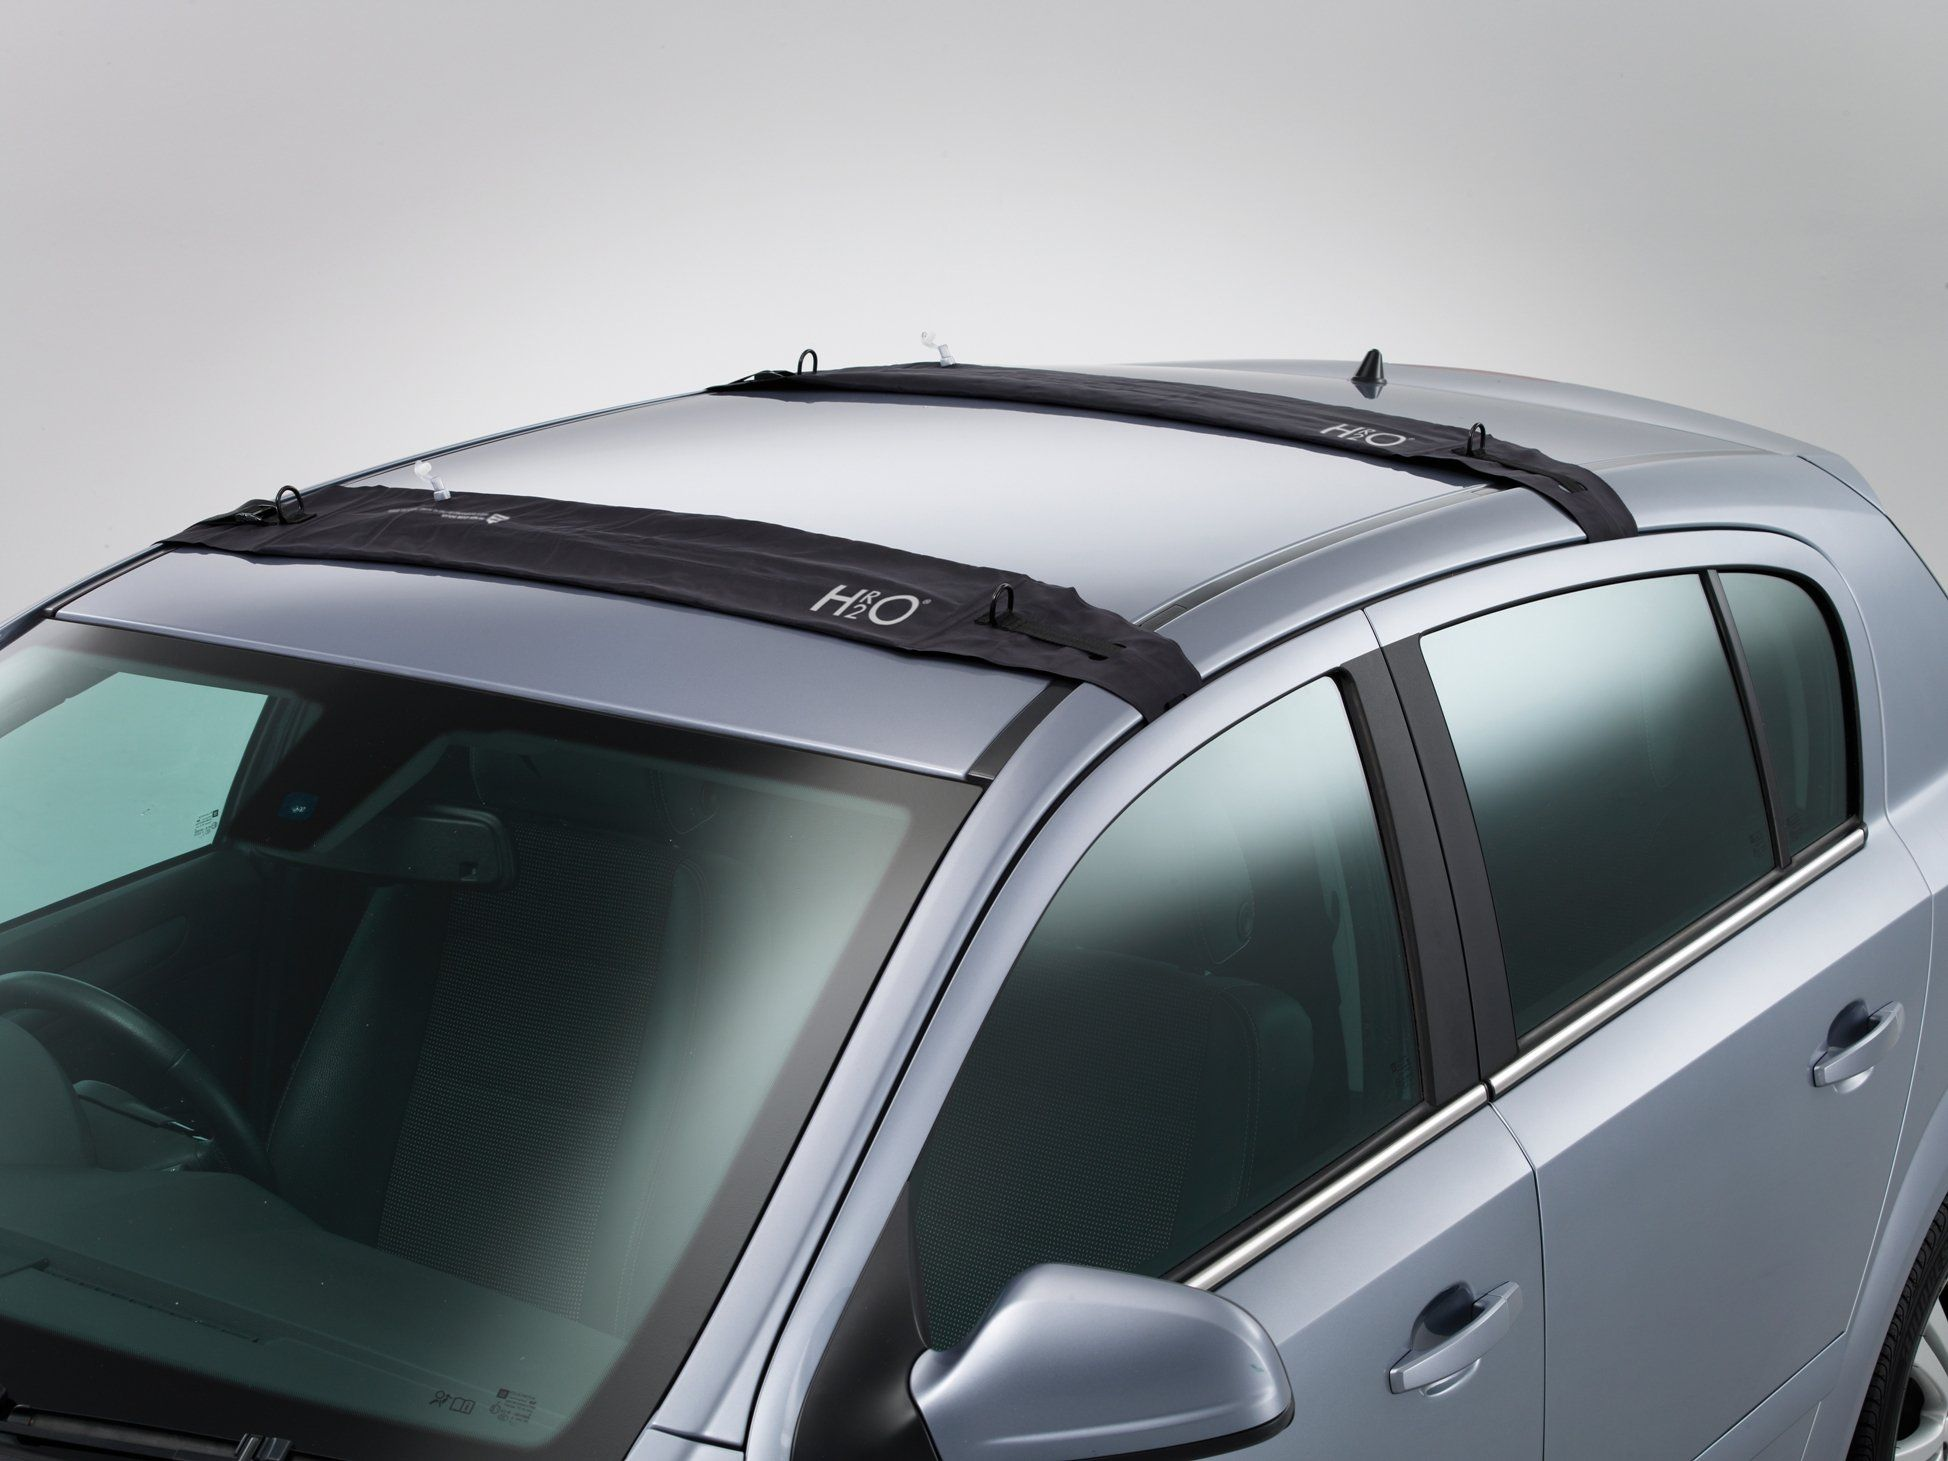 Inflatable Car Rack Collapsible, Yet Quick and Easy to